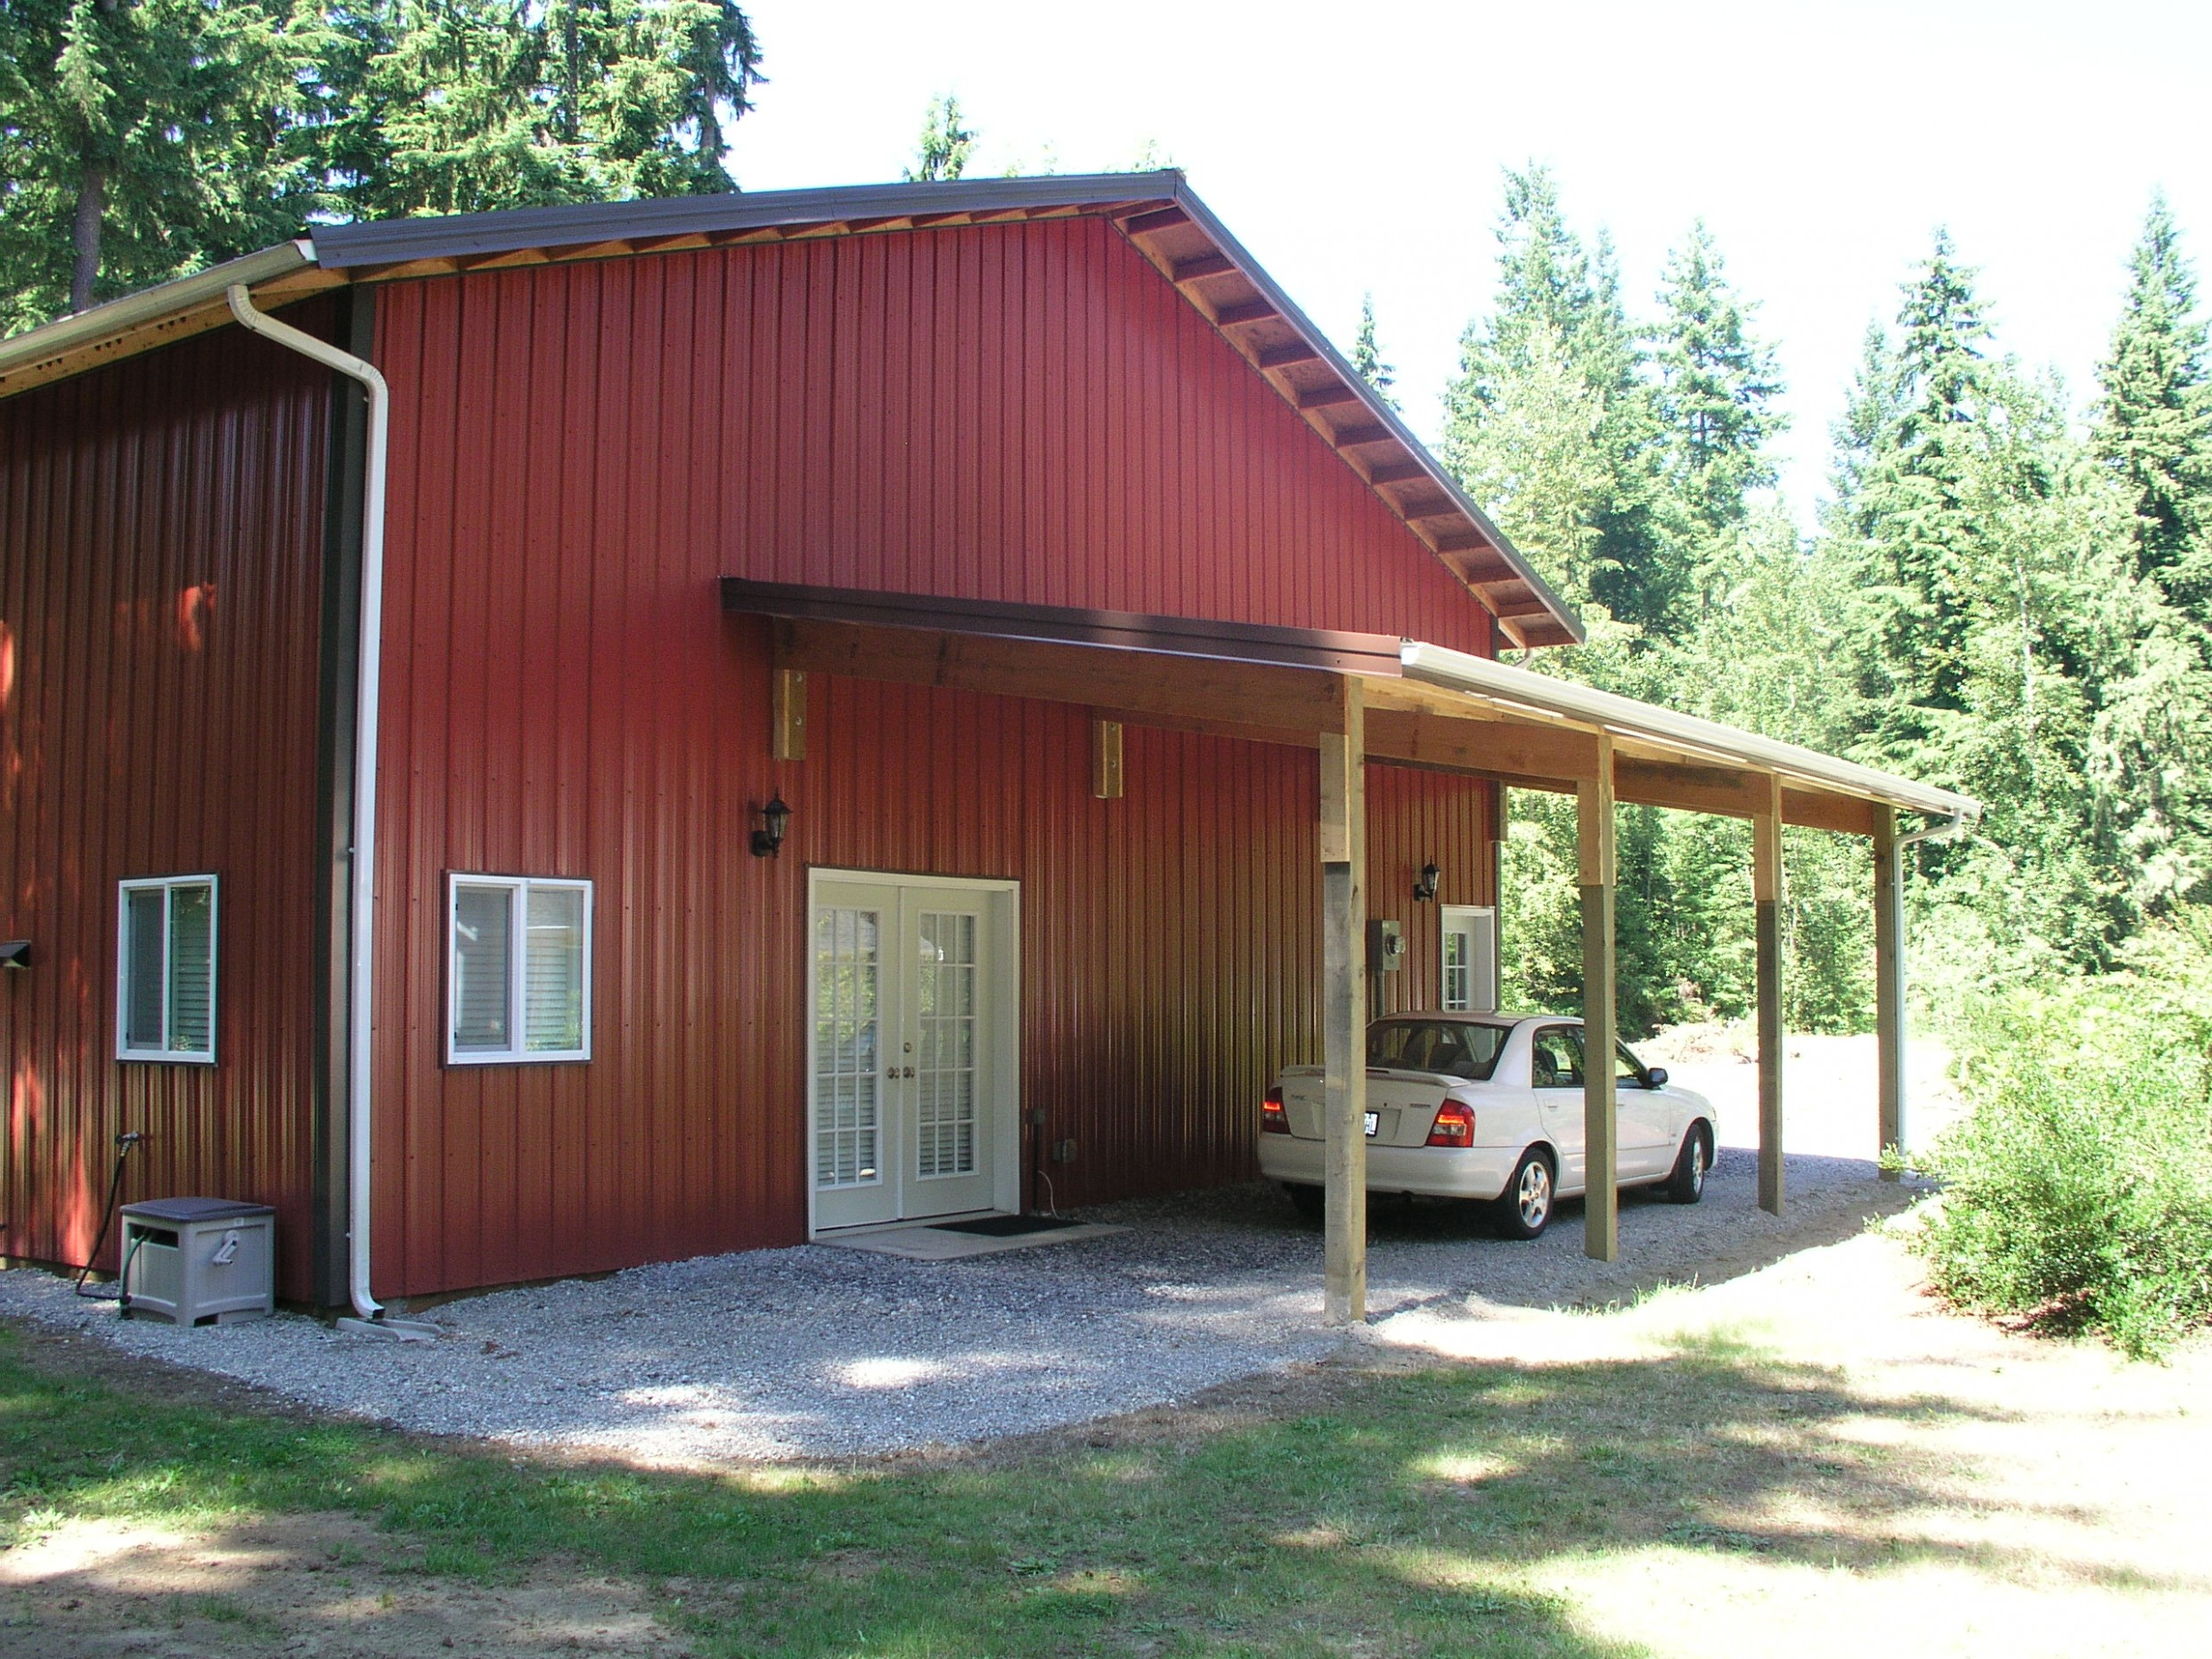 1517718181-wood-carports-attached-to-house-neaucomic-com-house-attached-carport.jpg